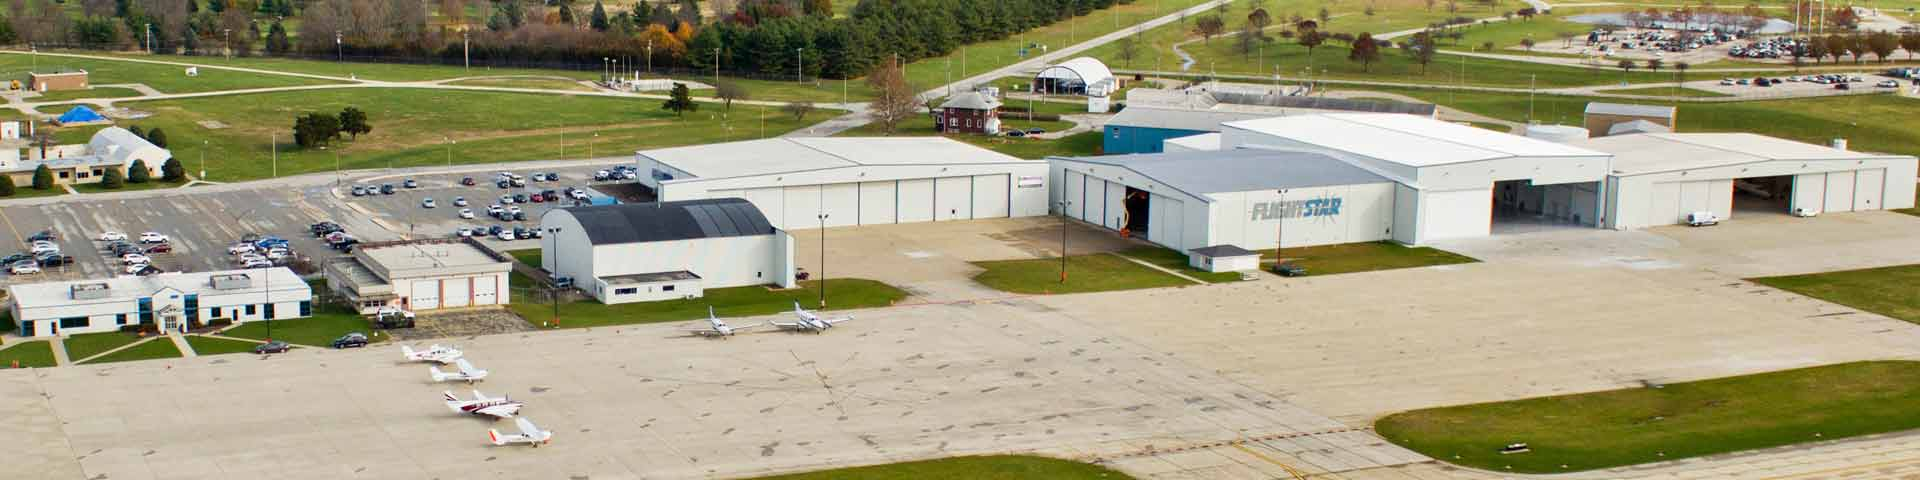 Aerial View of Flightstar Campus